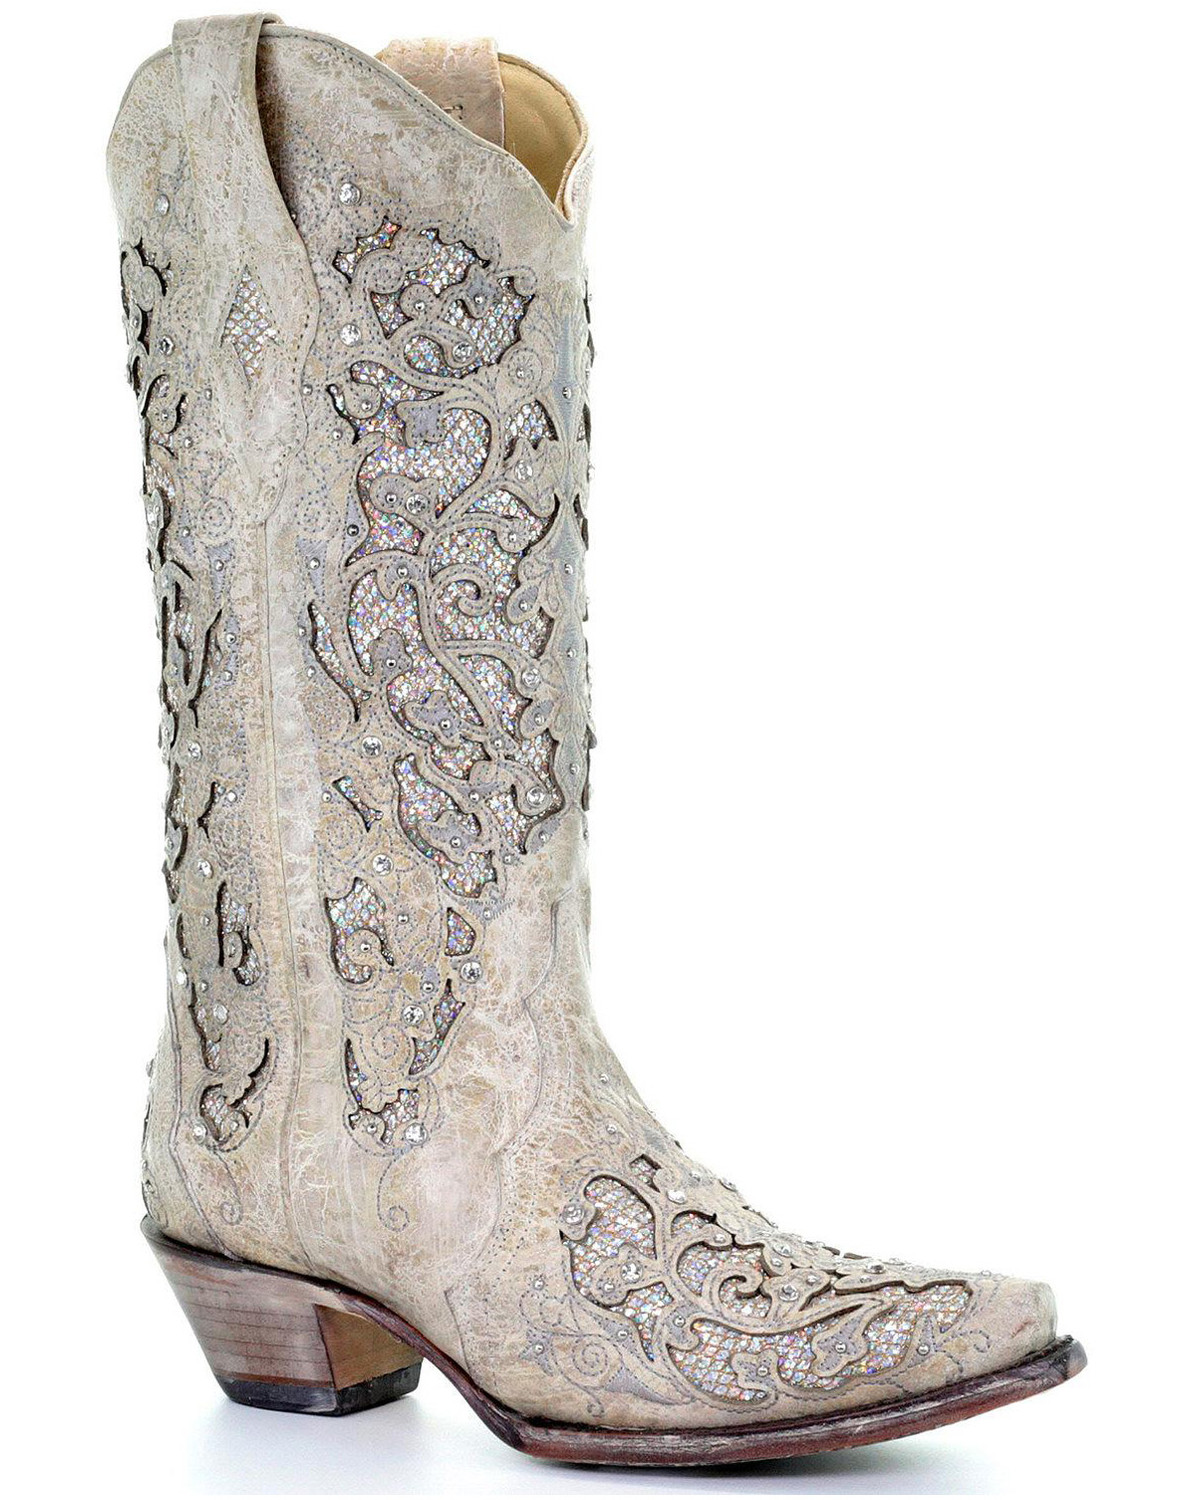 Wedding Cowgirl Boots: Corral Women's Glitter Inlay And Crystals Wedding Boots